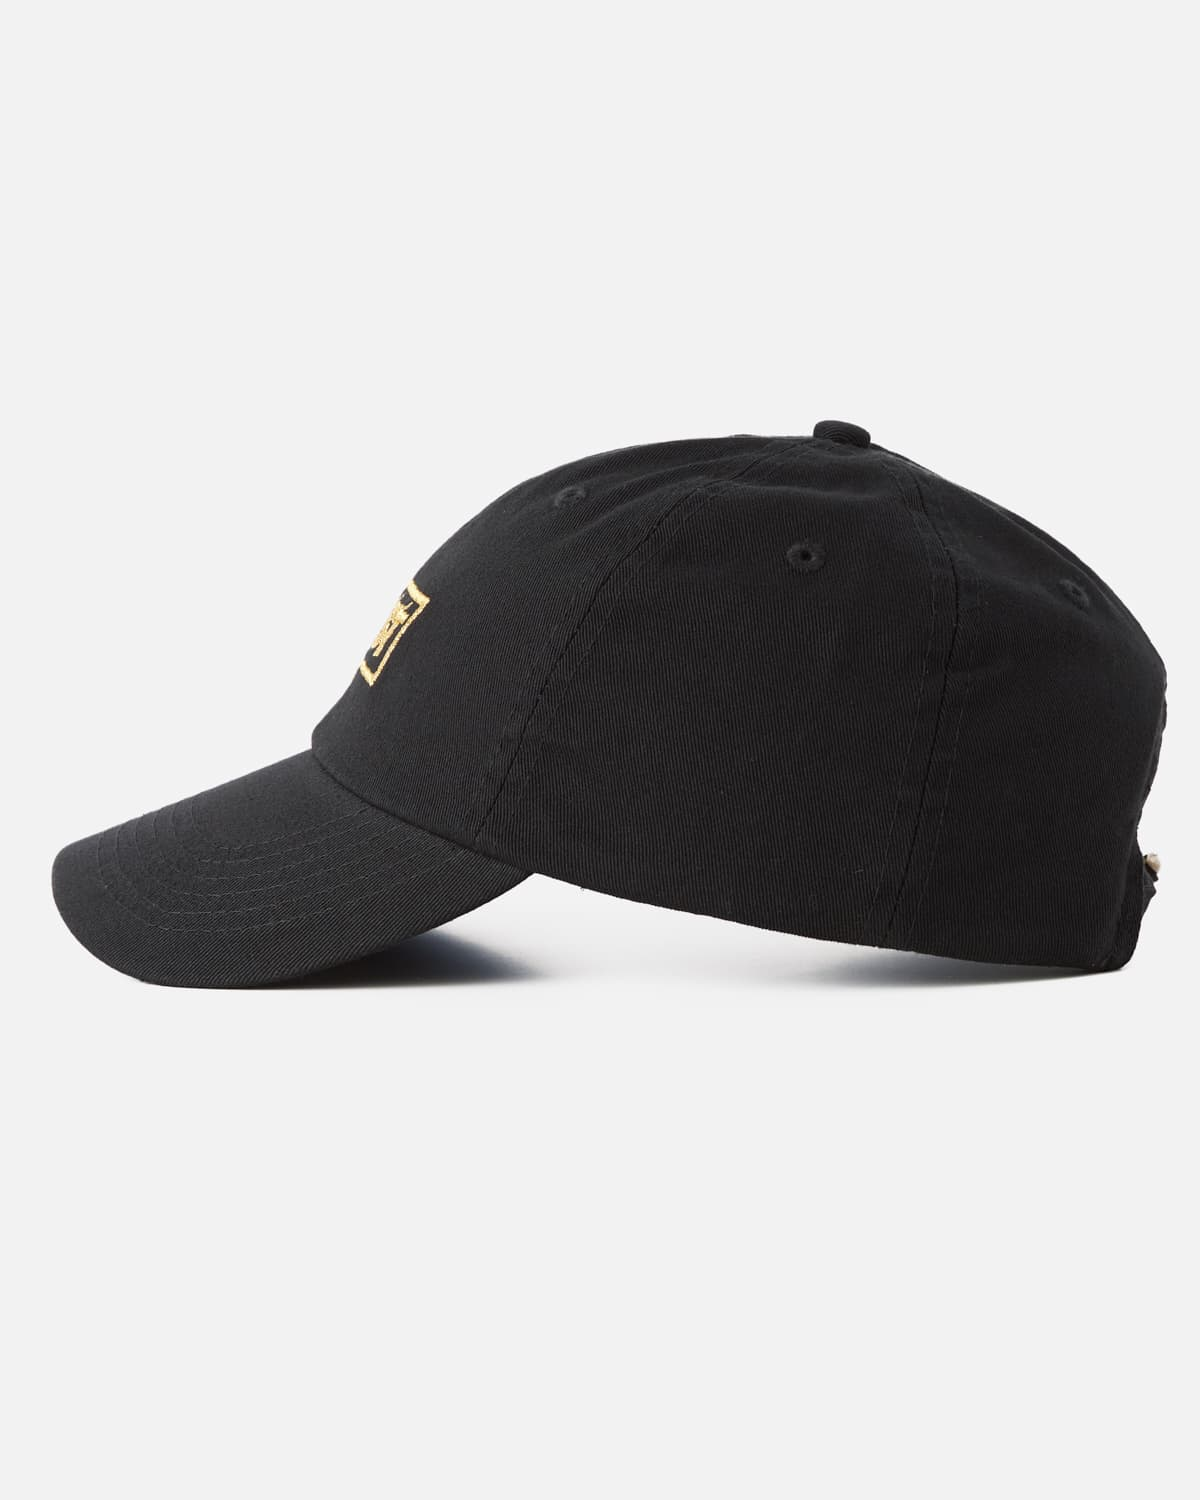 'Beast' Dad Hat - Black/Gold